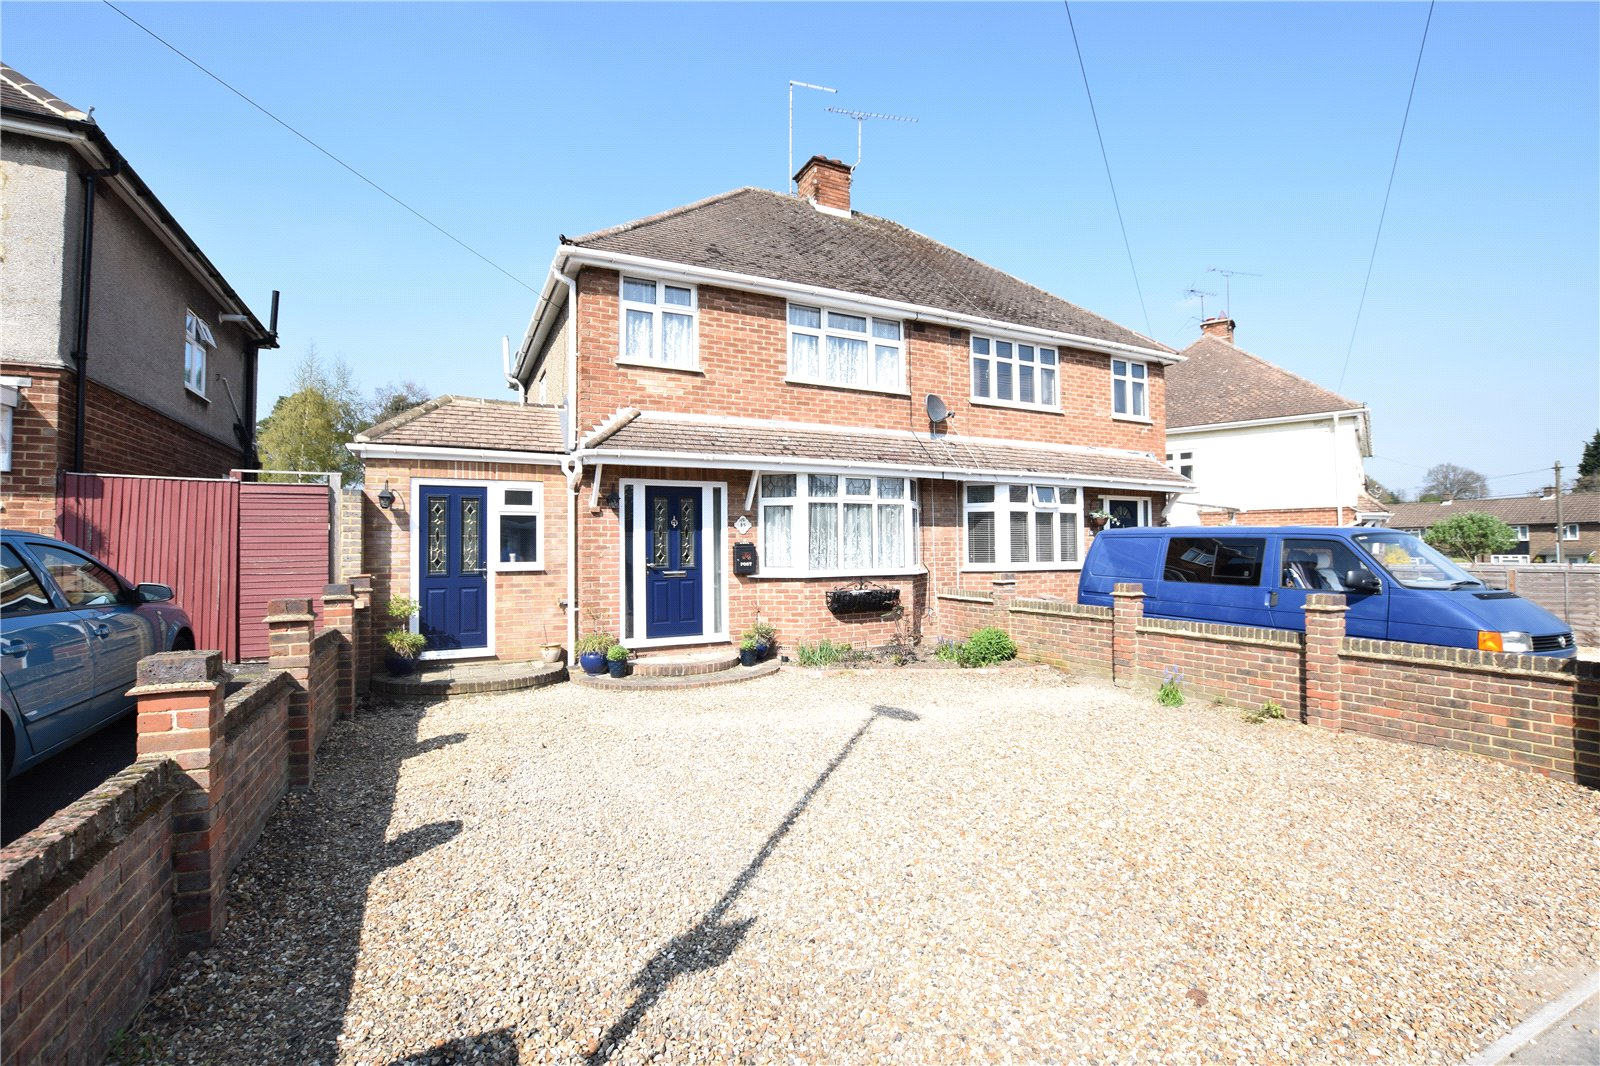 3 Bedrooms Semi Detached House for sale in Deepfield Road, Bracknell, Berkshire, RG12